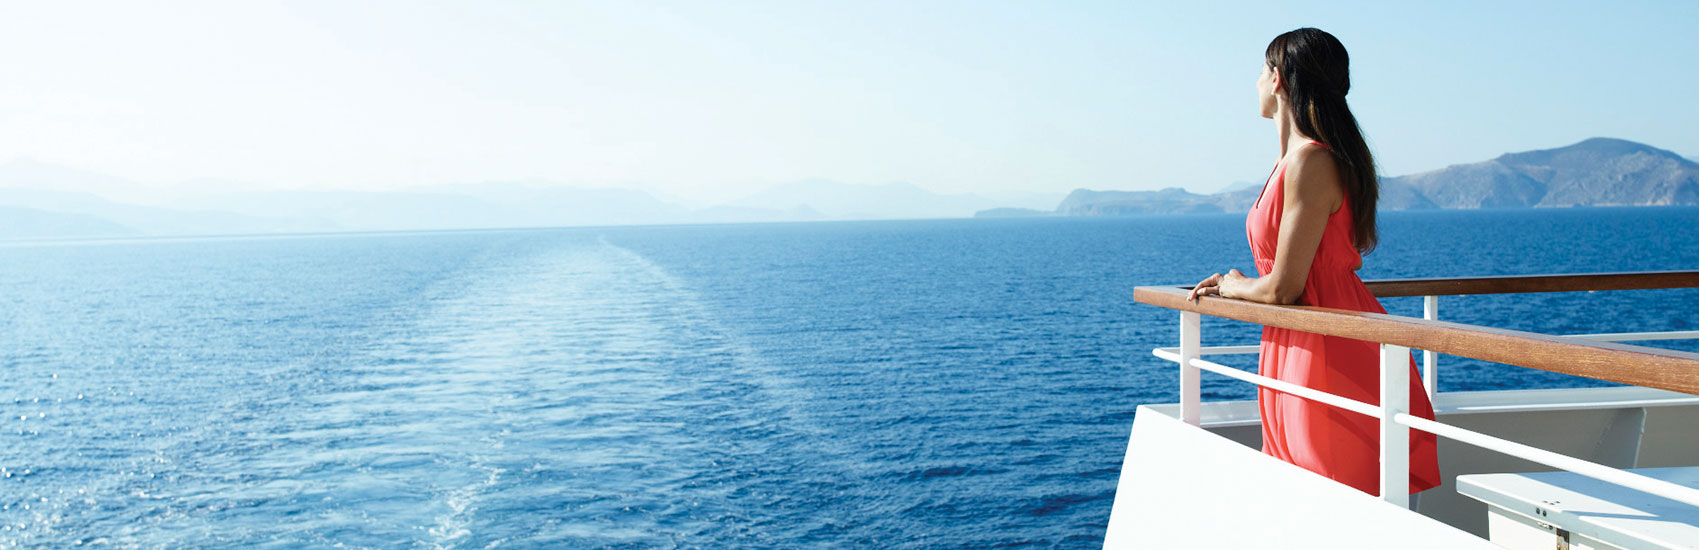 Sail Solo with Seabourn's Sensational Savings 0